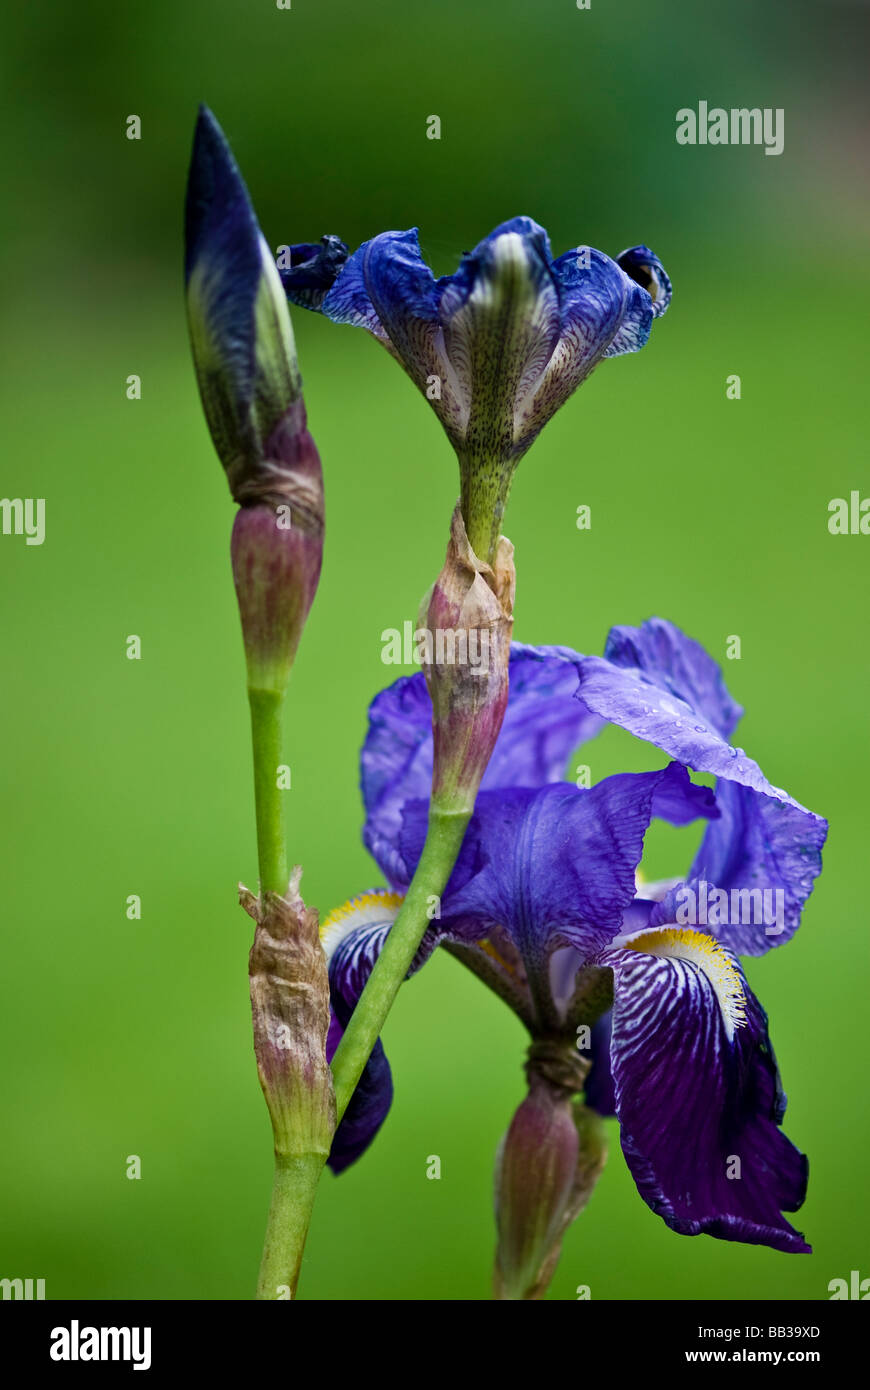 Iris Iridaceae. Purple Bearded Iris,3 flowers in different stages of development on 1 stem. Close up, bright green - Stock Image